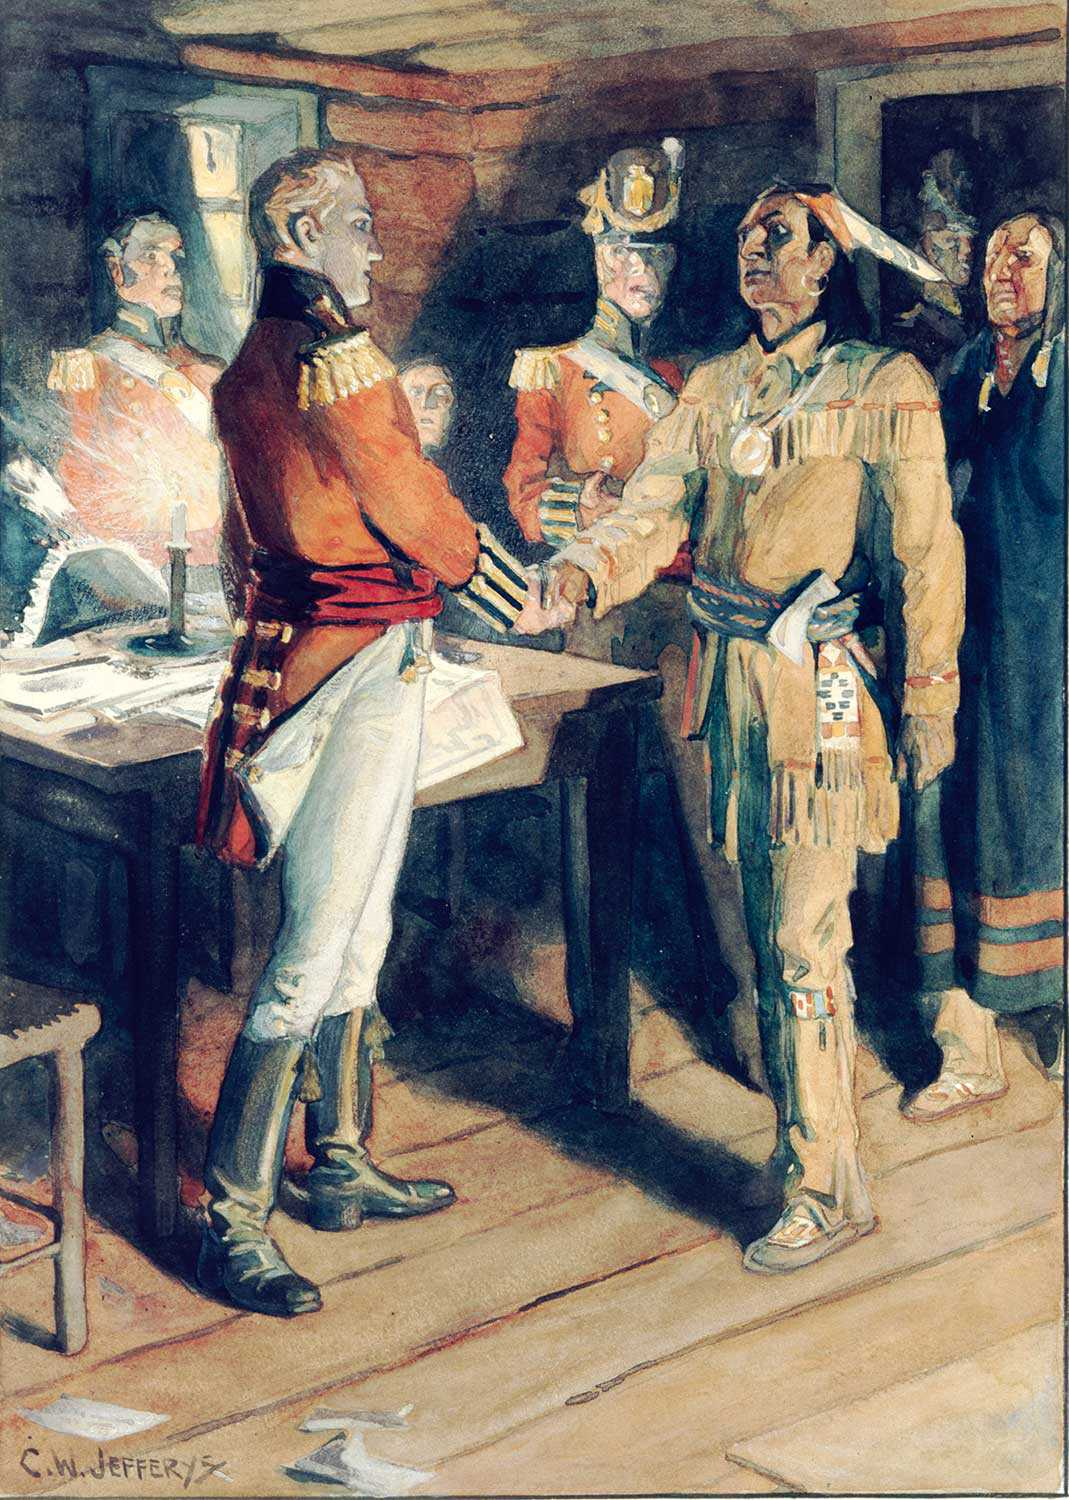 Meeting of Brock and Tecumseh, 1812, by C.W. Jeffreys, 1869-1951. Library and Archives Canada, 1972-26-1360.